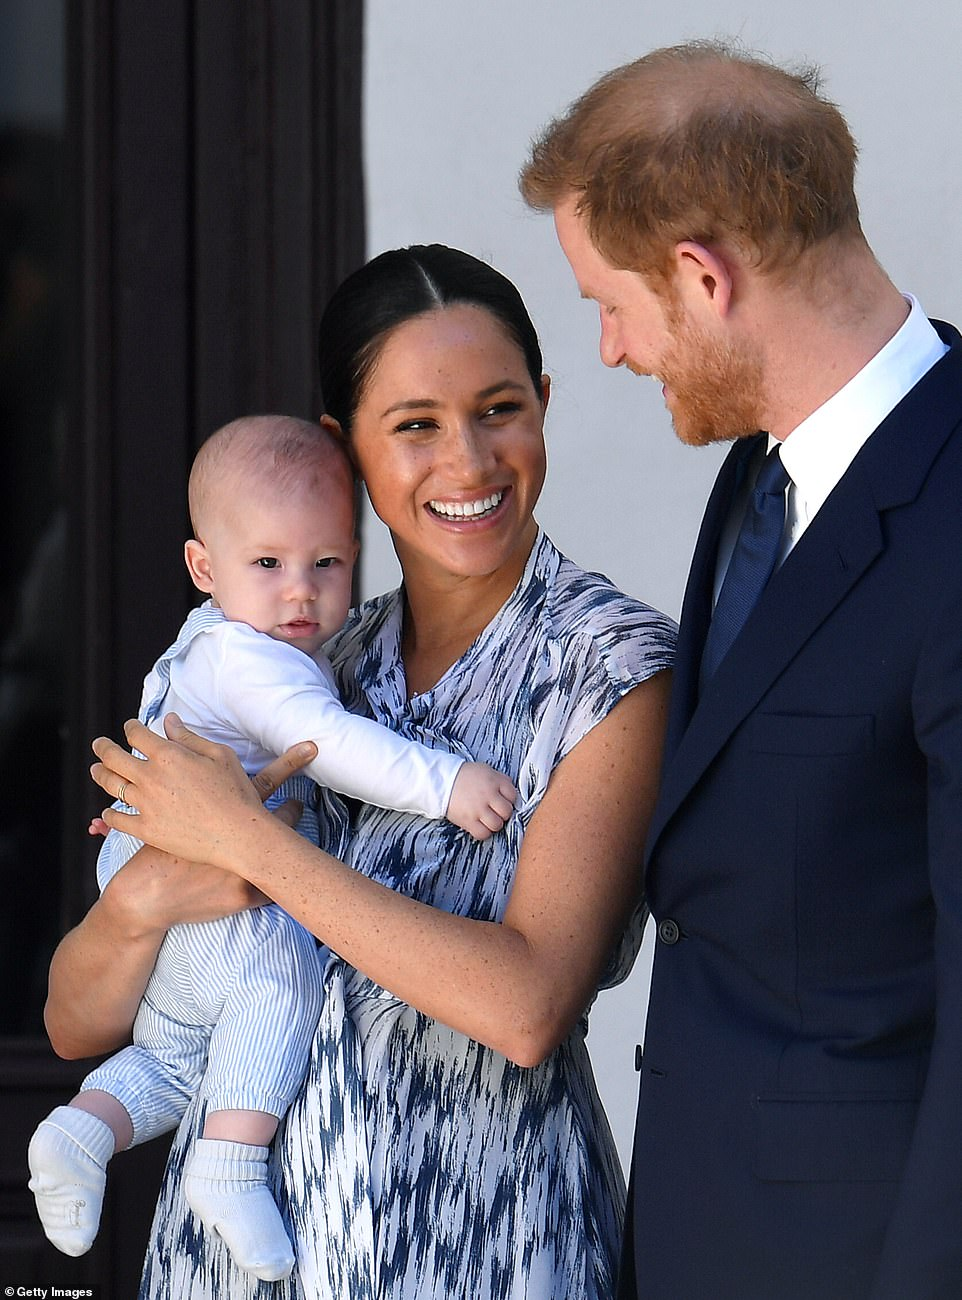 The Sussexes have been living in the Montecito home for six weeks